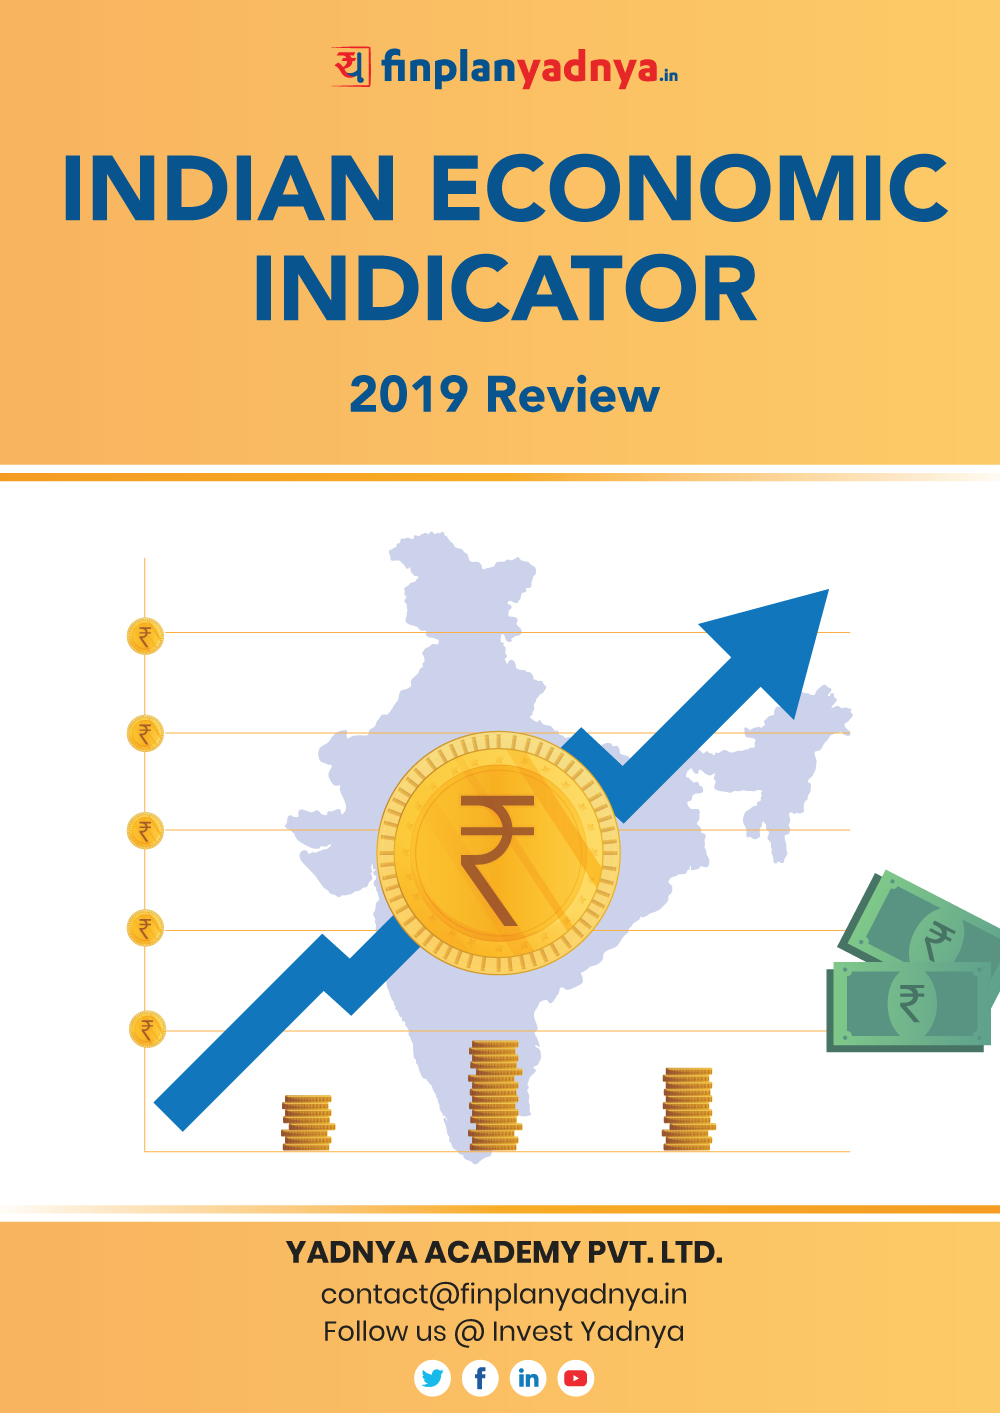 This report gives you latest numbers and trends of all major macro-economic indicator's of India. This gives a very good view of India's economy and Financial health.